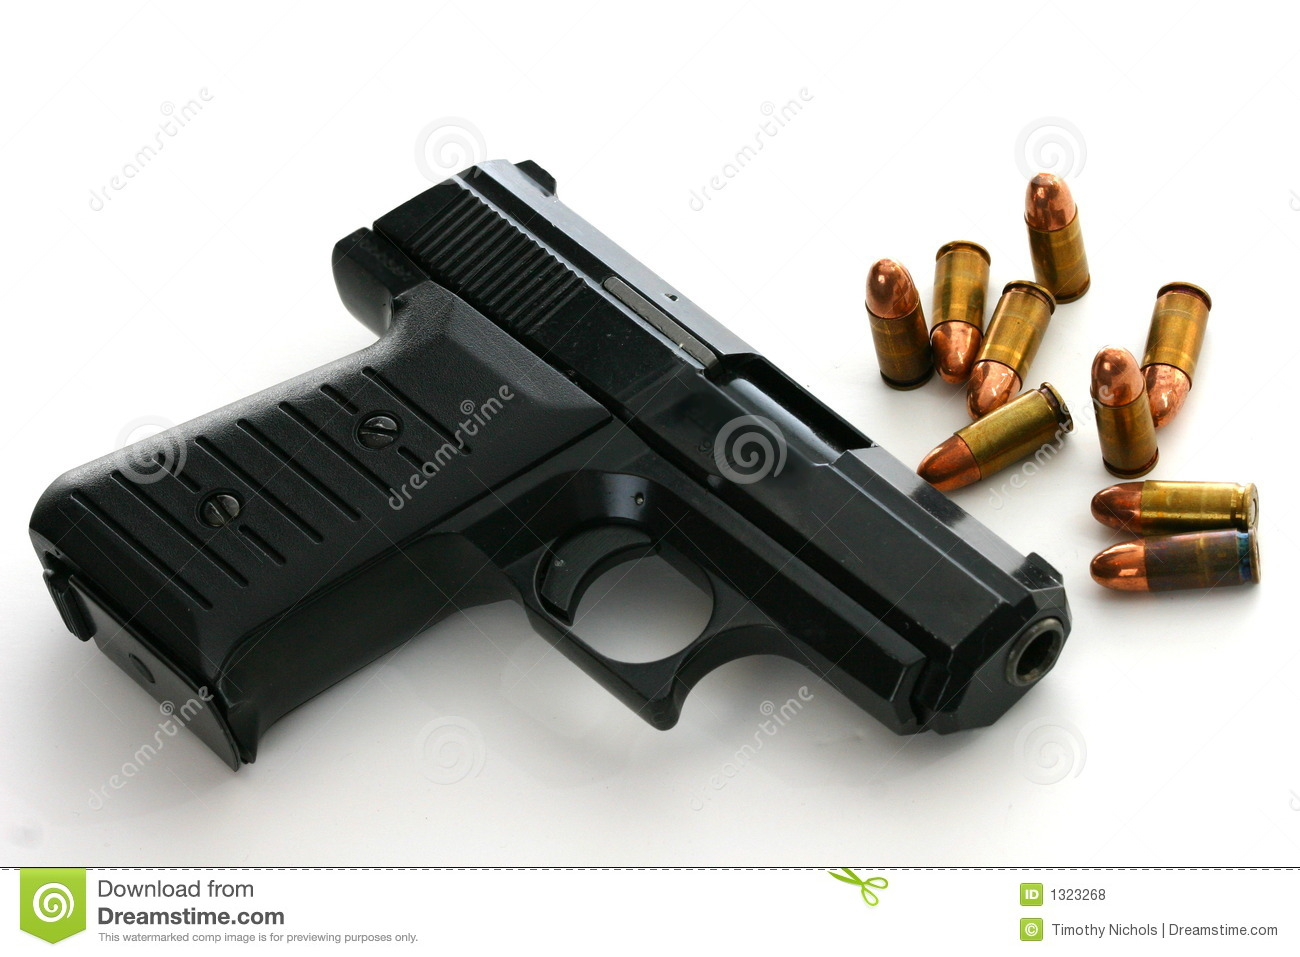 Desert Home Plans 9mm Pistol With Ammo Royalty Free Stock Photos Image